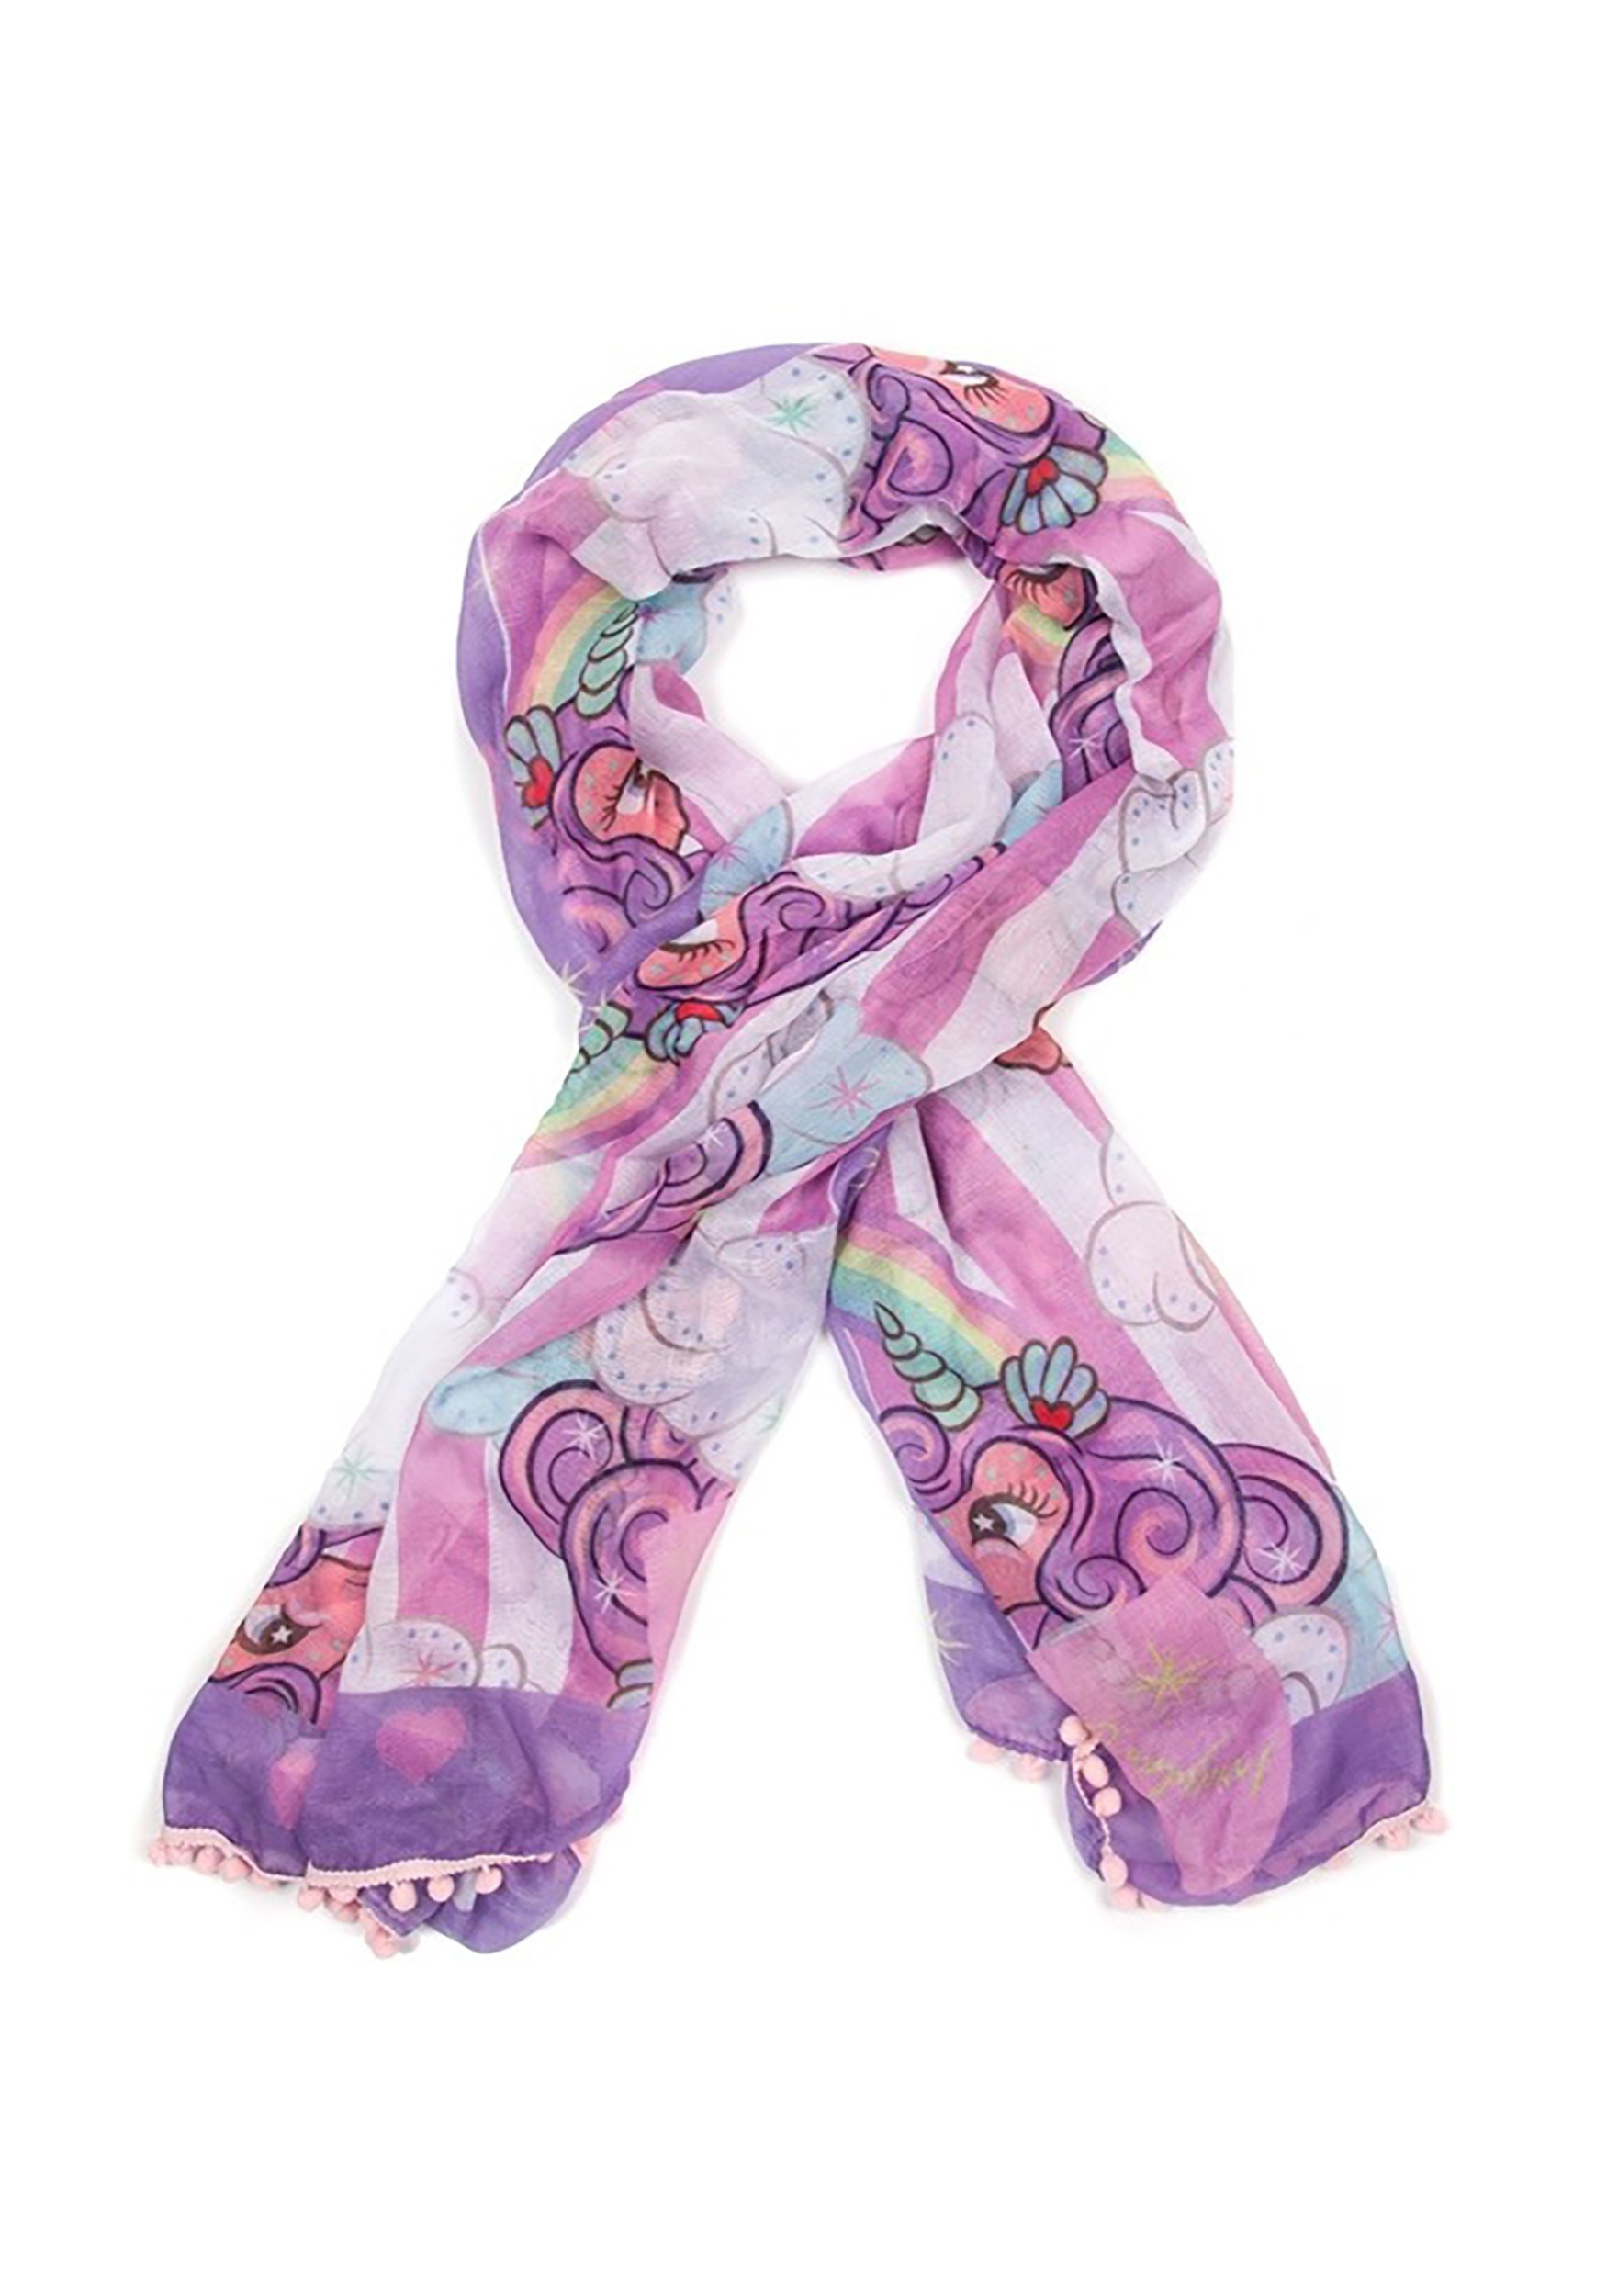 Rainbow Lightweight Scarf Irregular Choice Unicorn